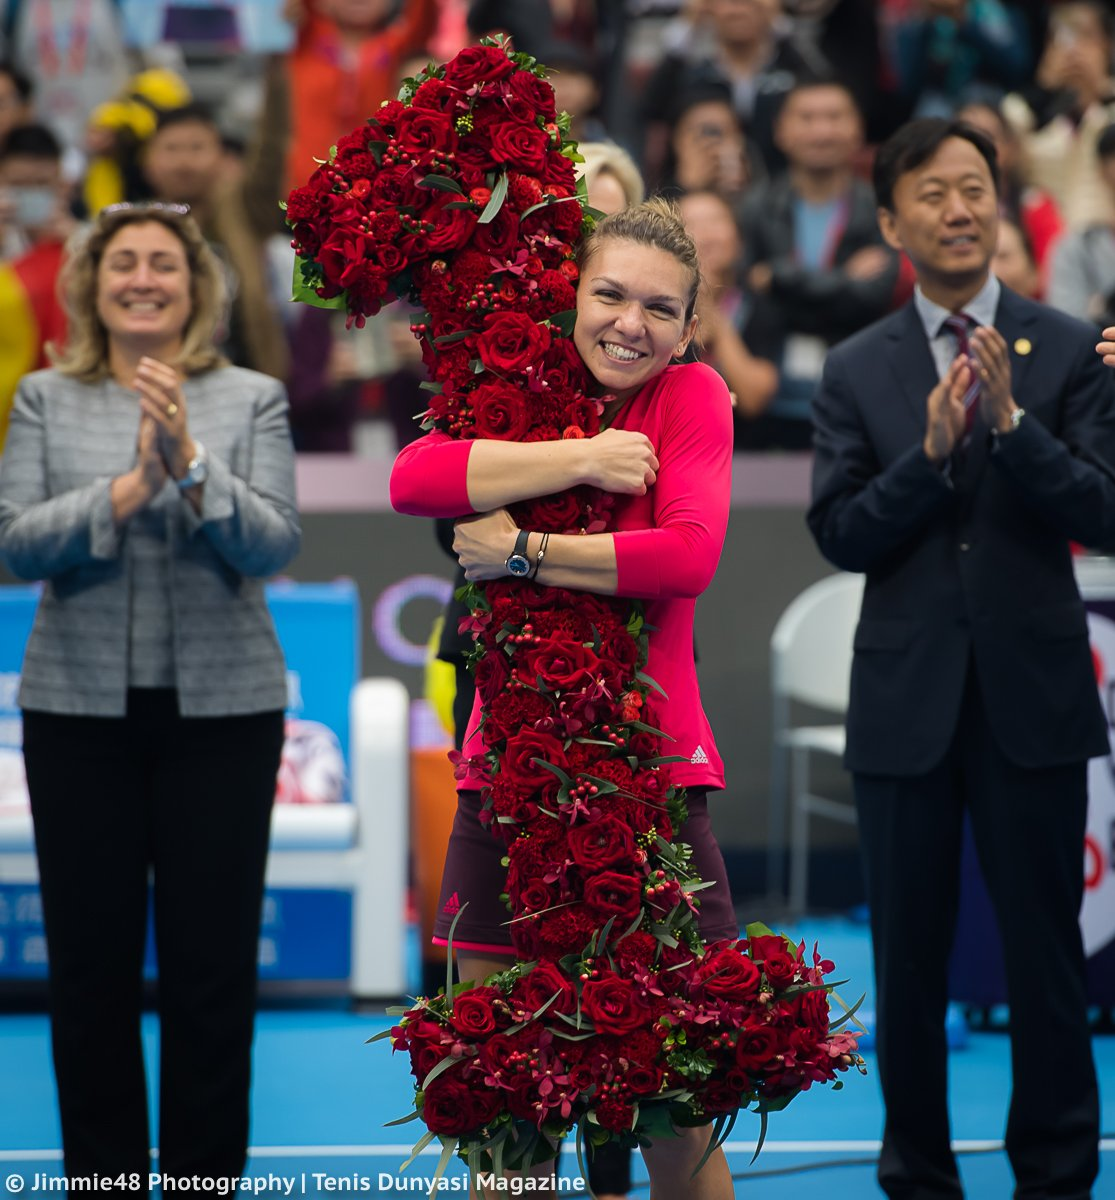 With a run to the final of China Open in Beijing, Halep will become new WTA World No. 1 when the updated rankings are released on Monday, October 9.